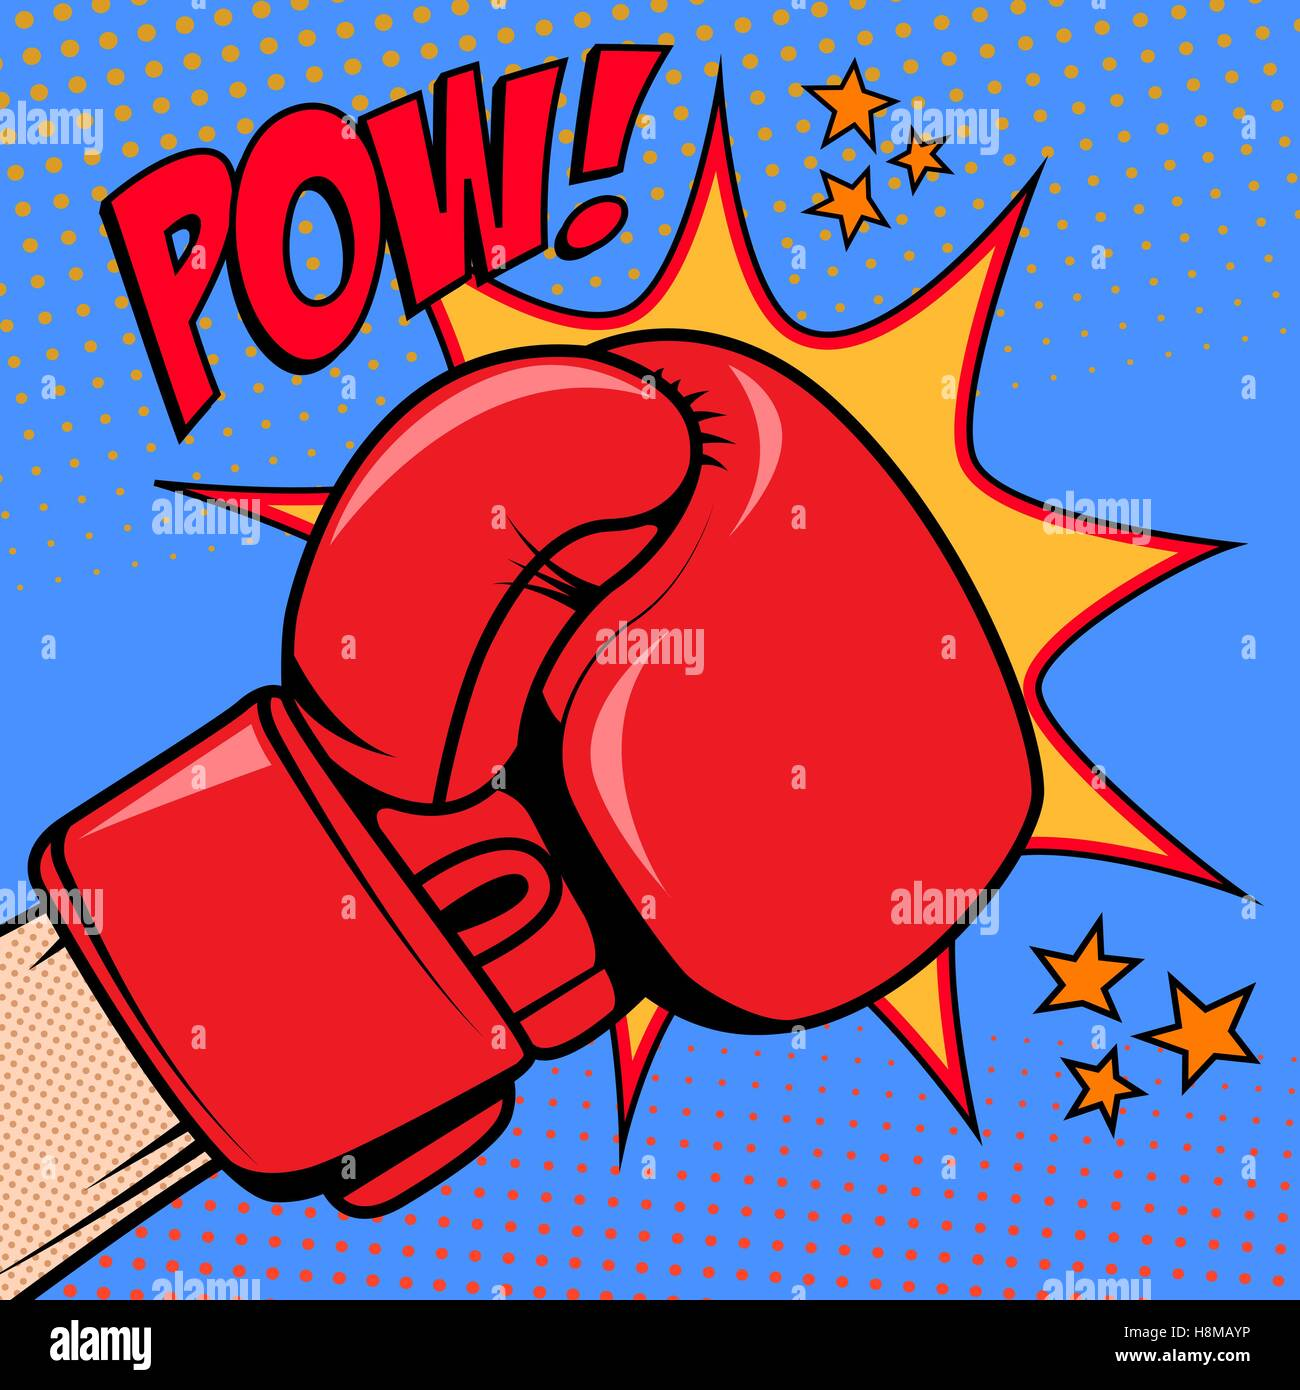 human hand in pop art style with boxing glove pow design